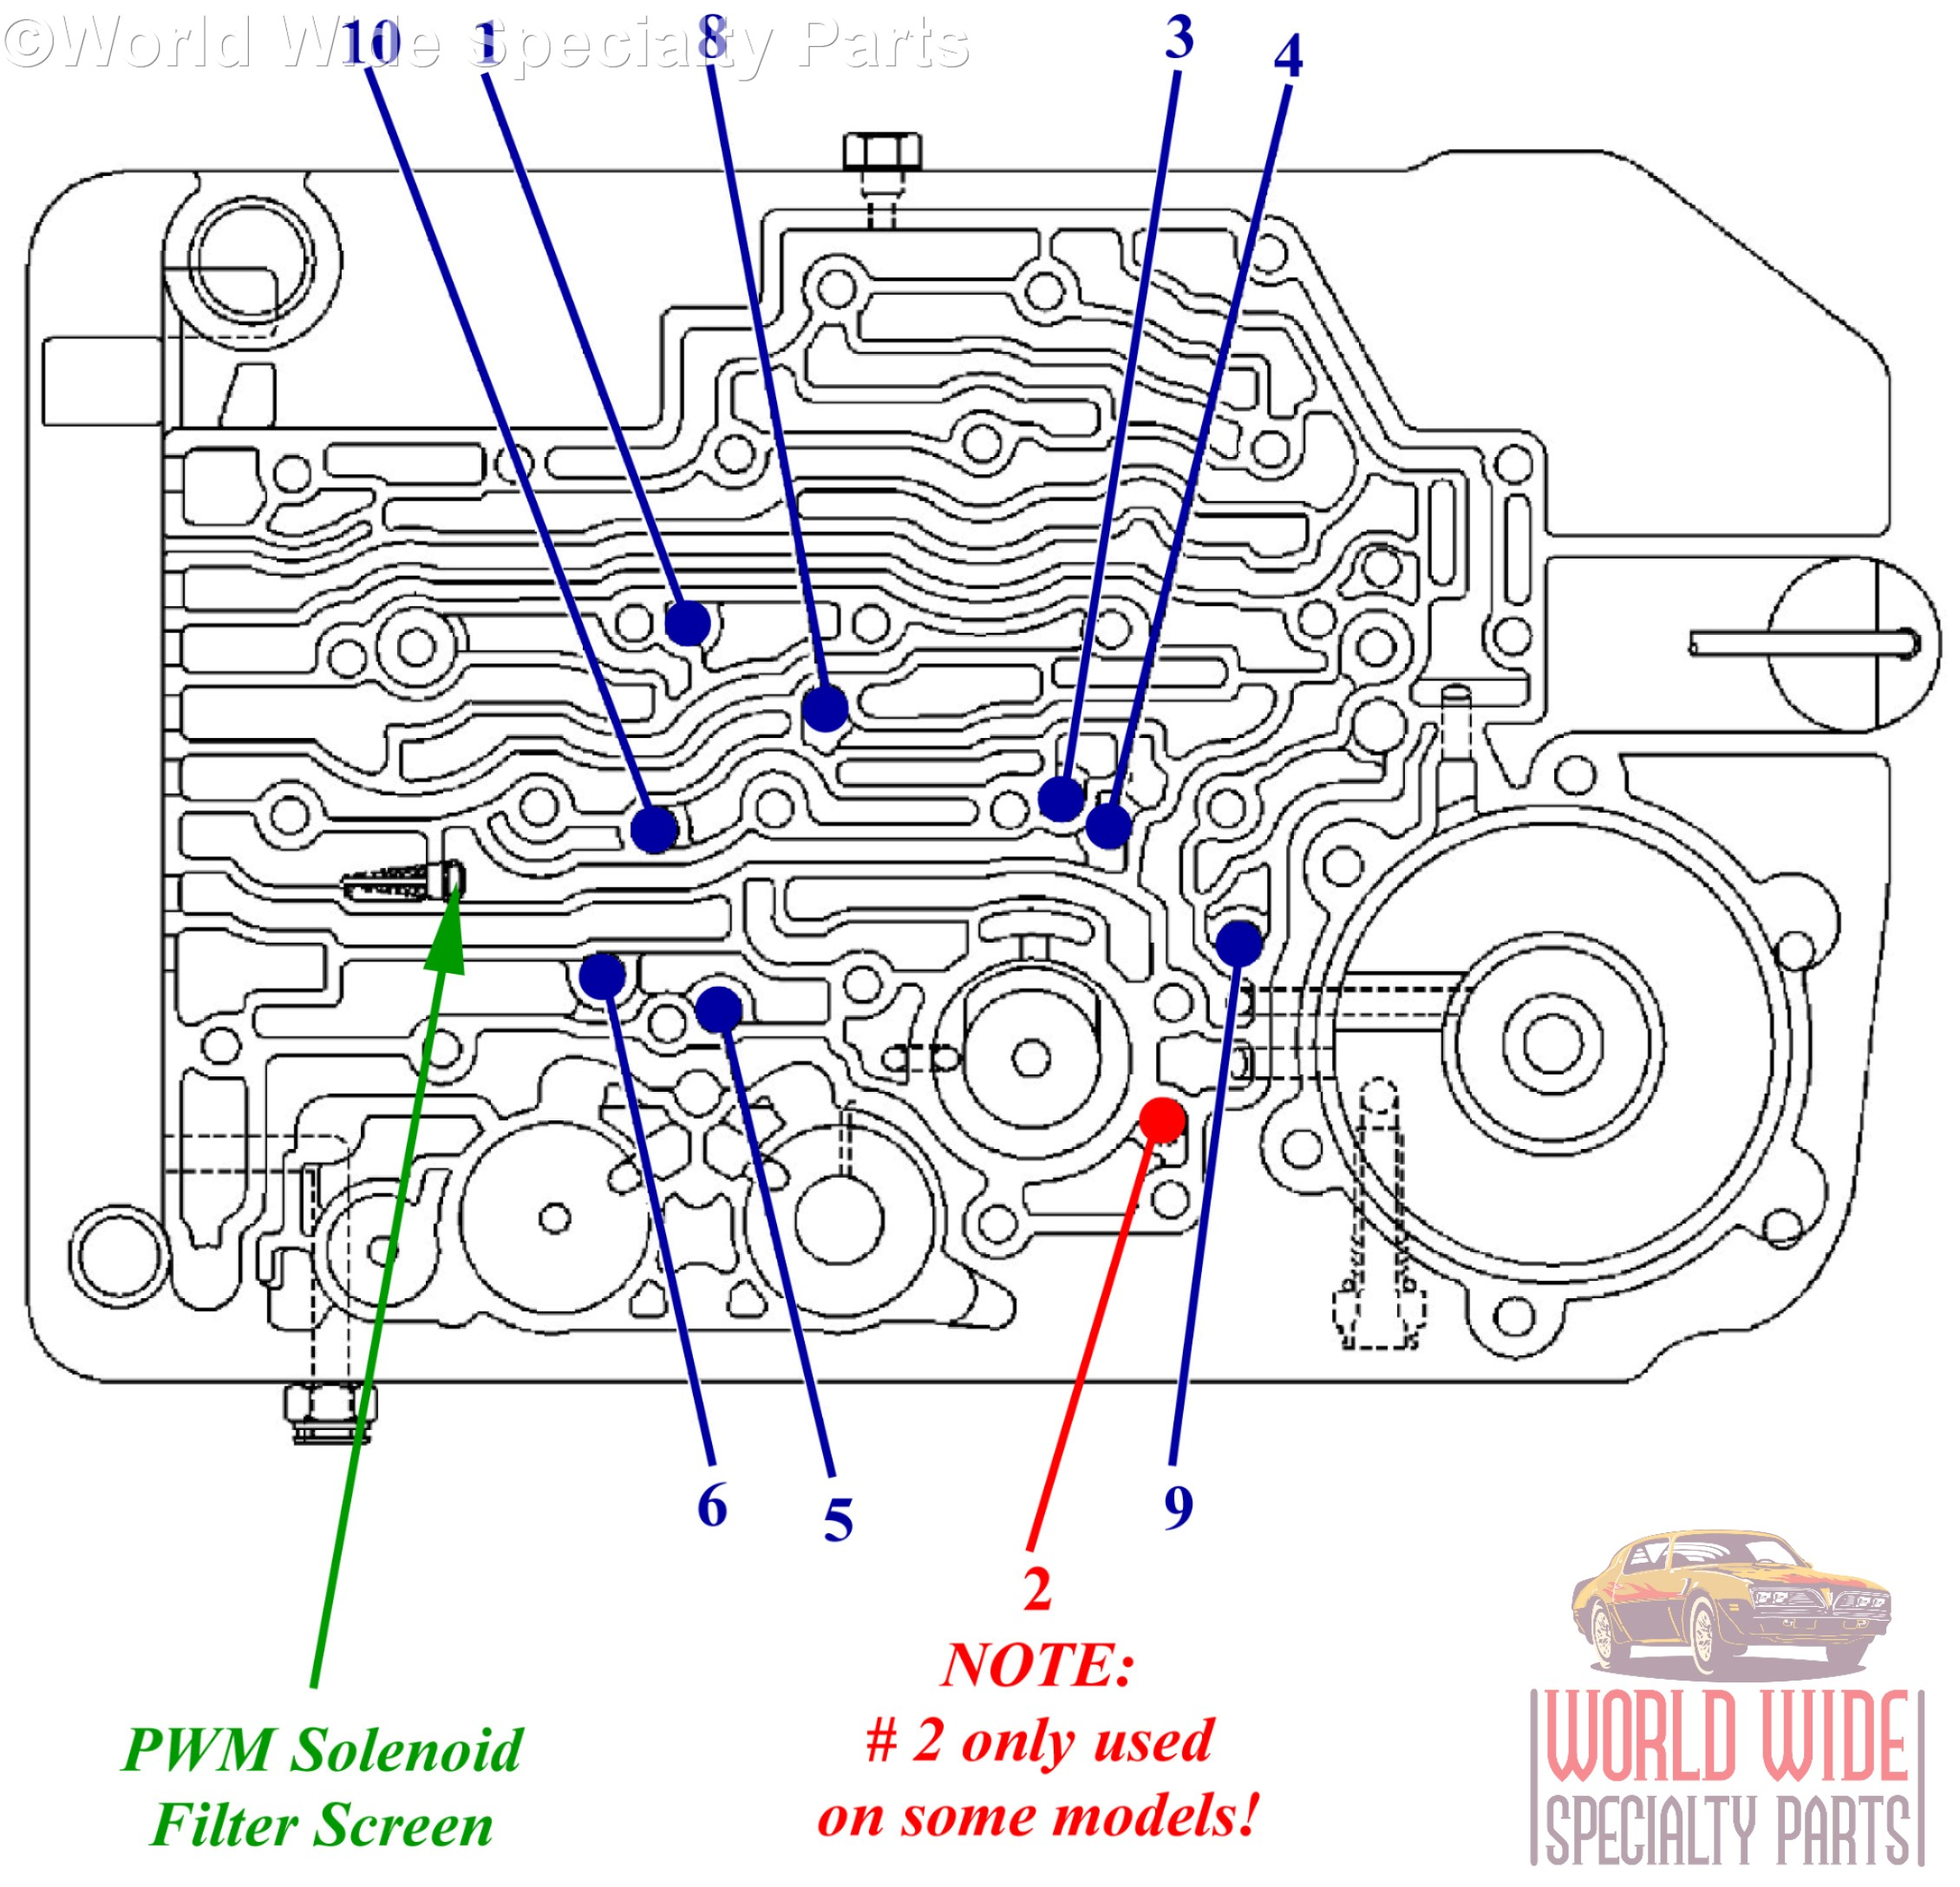 1995 4l80e wiring diagram 2006 nissan frontier radio external harness removal diagrams